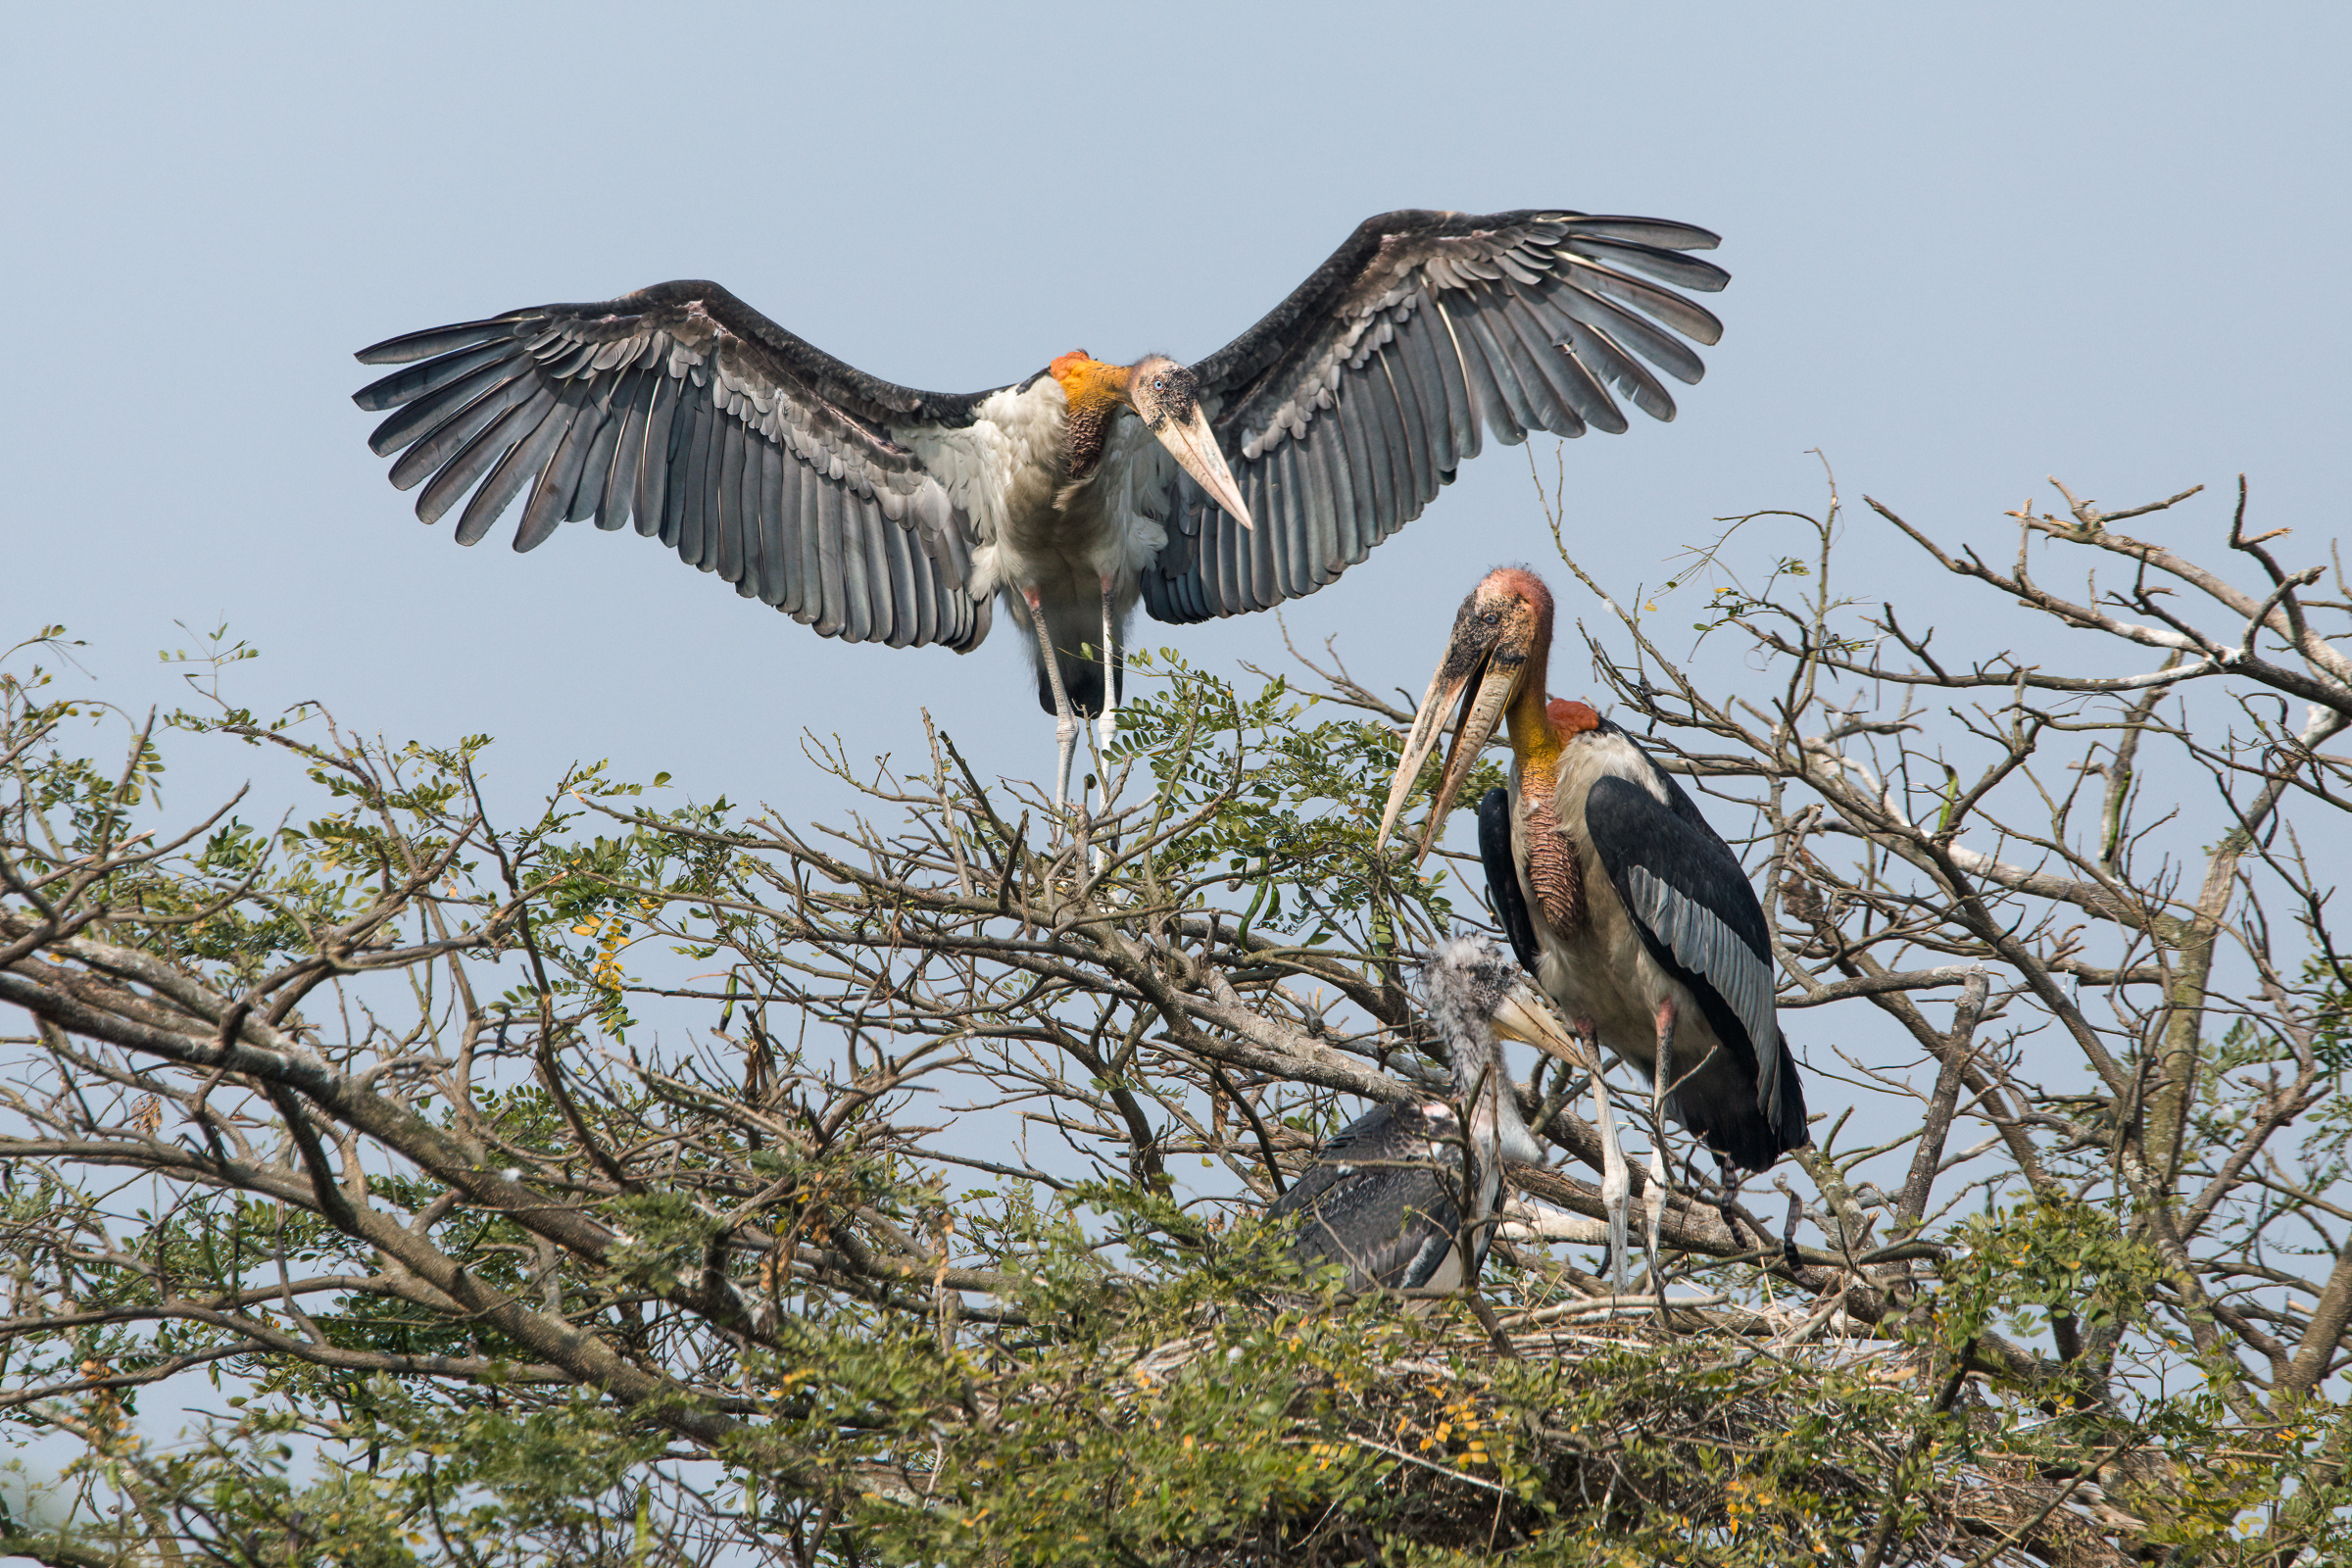 Adult greater adjutants perch next to their lone nestling. Villagers of the Kamrup District now protect the storks' nesting trees, which are often located in their backyards.